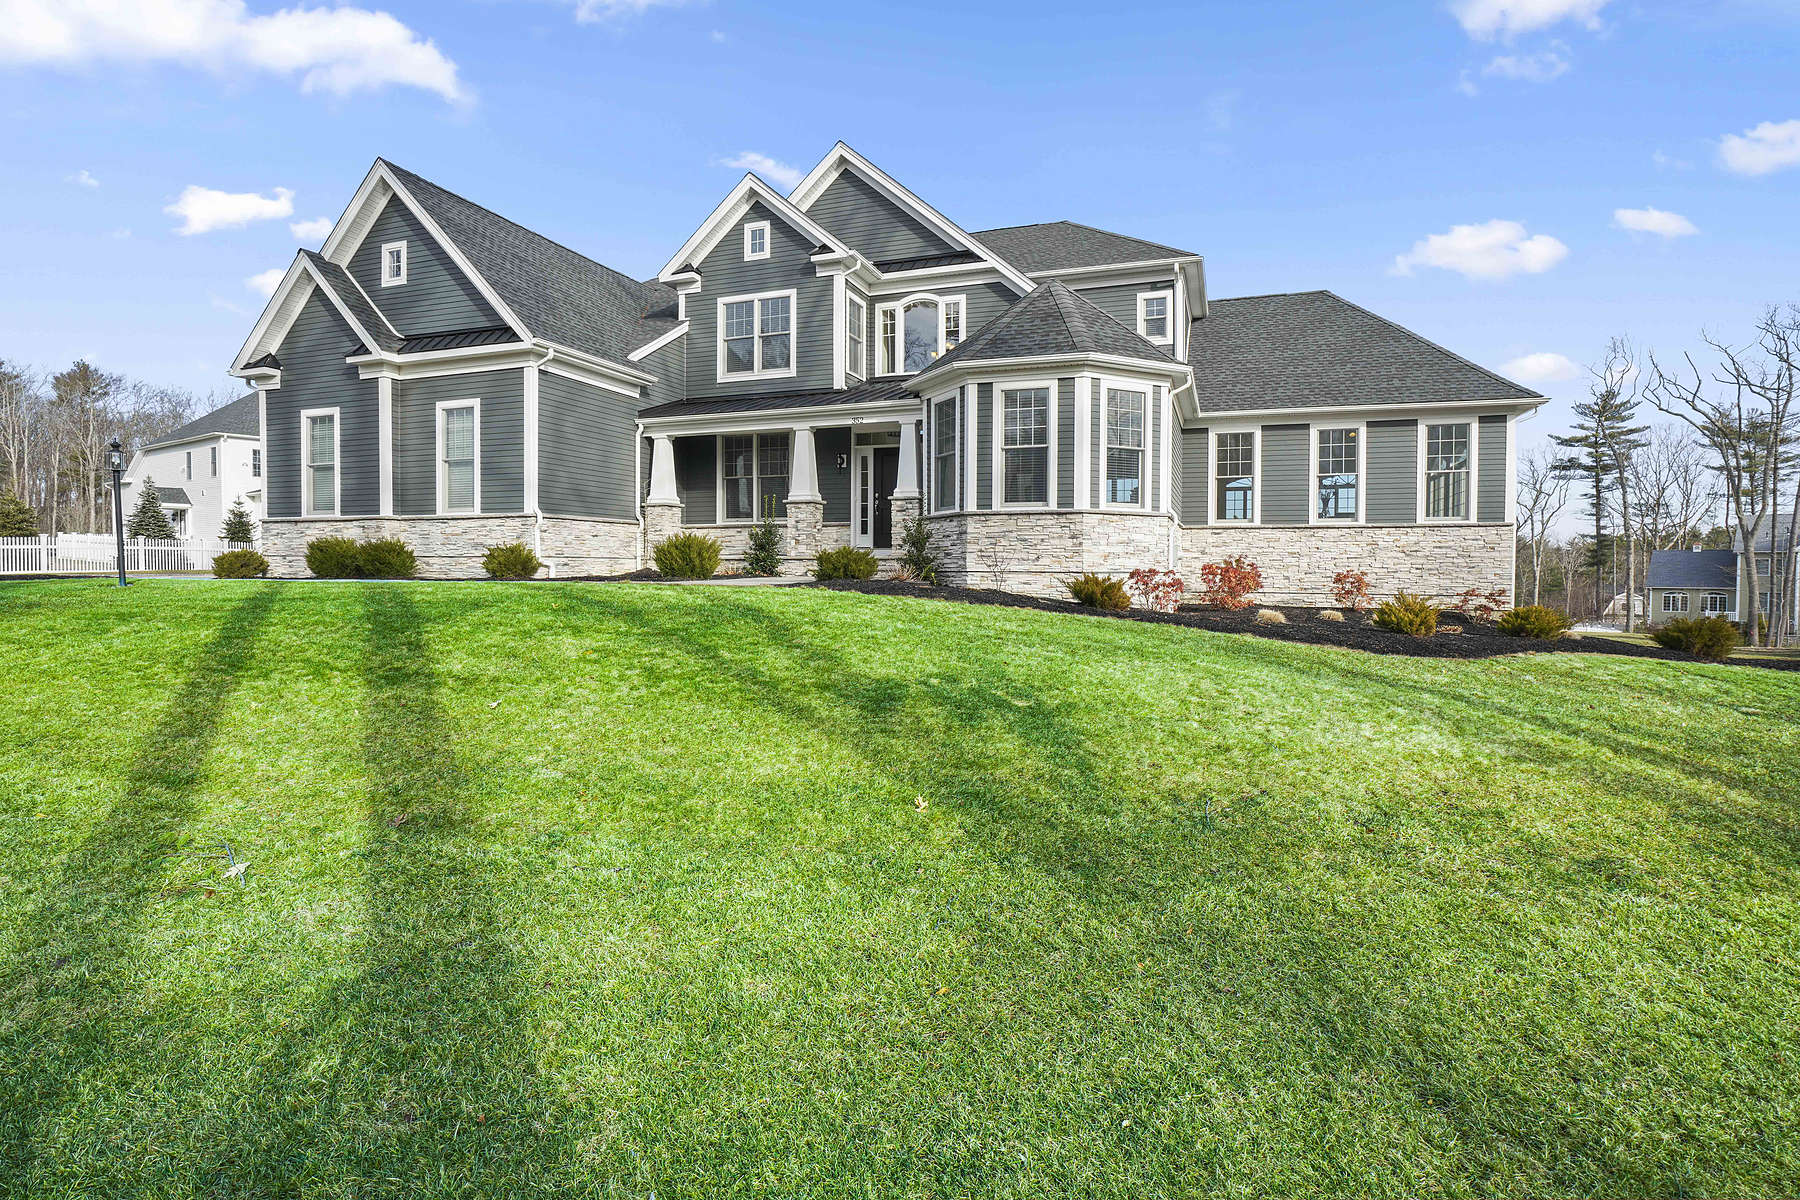 Single Family Homes for Sale at 352 Circuit Street, Norwell 352 Circuit Street Norwell, Massachusetts 02061 United States